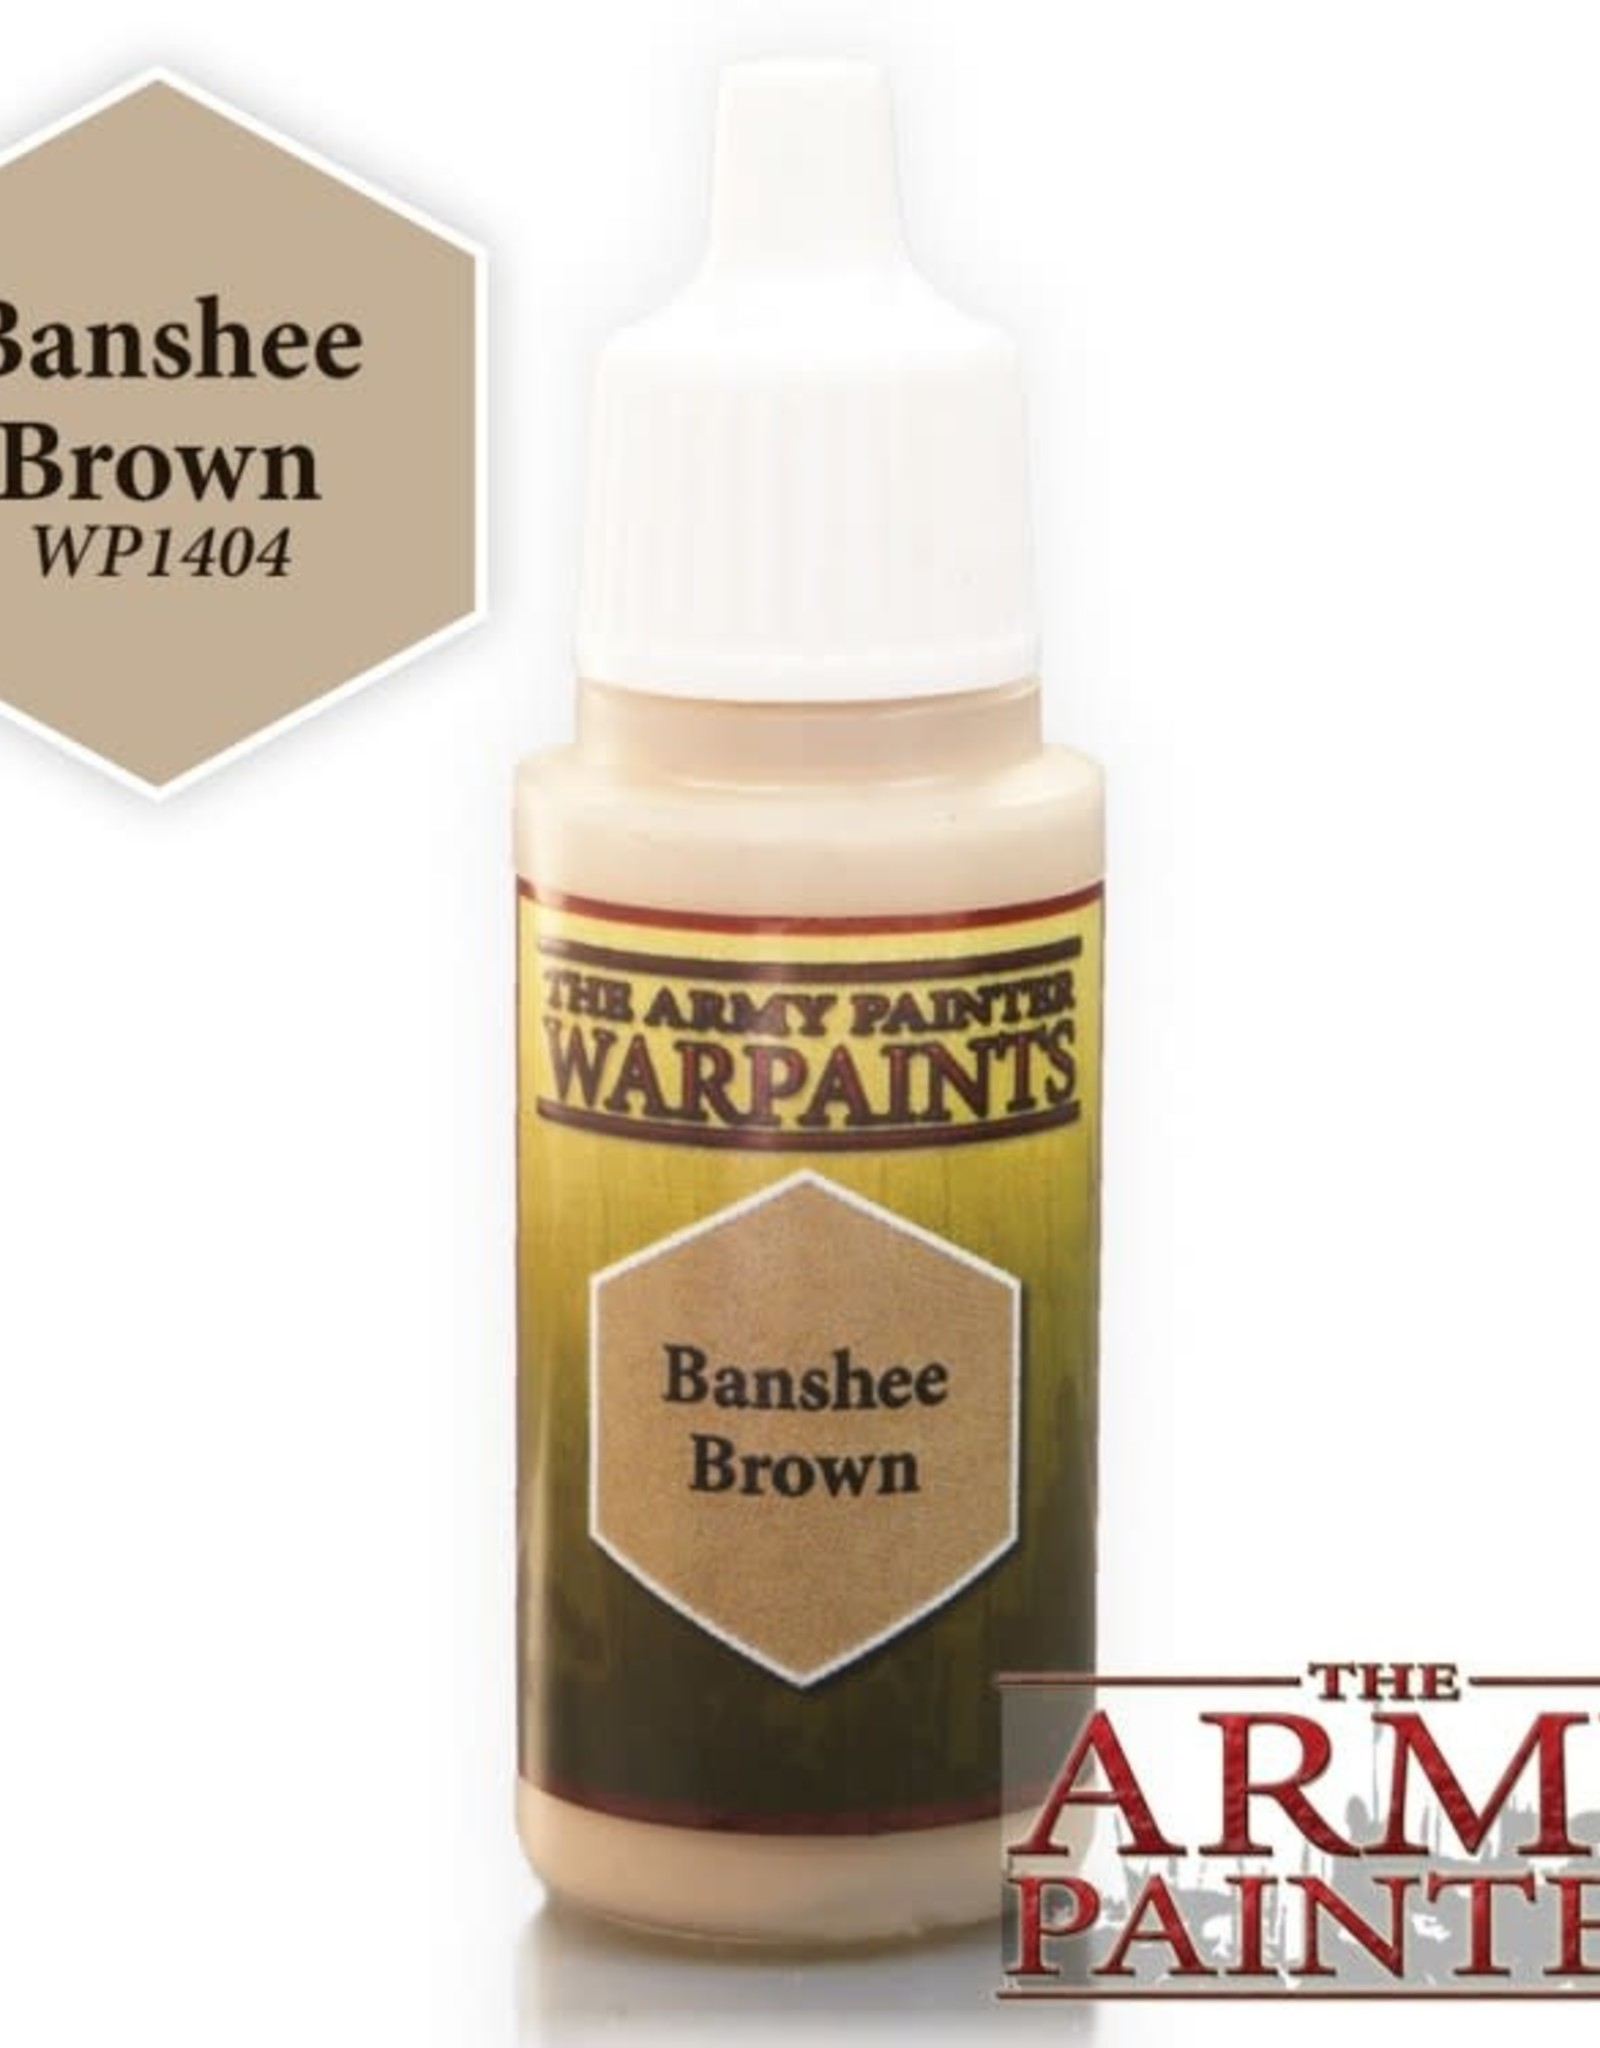 The Army Painter Warpaints - Banshee Brown